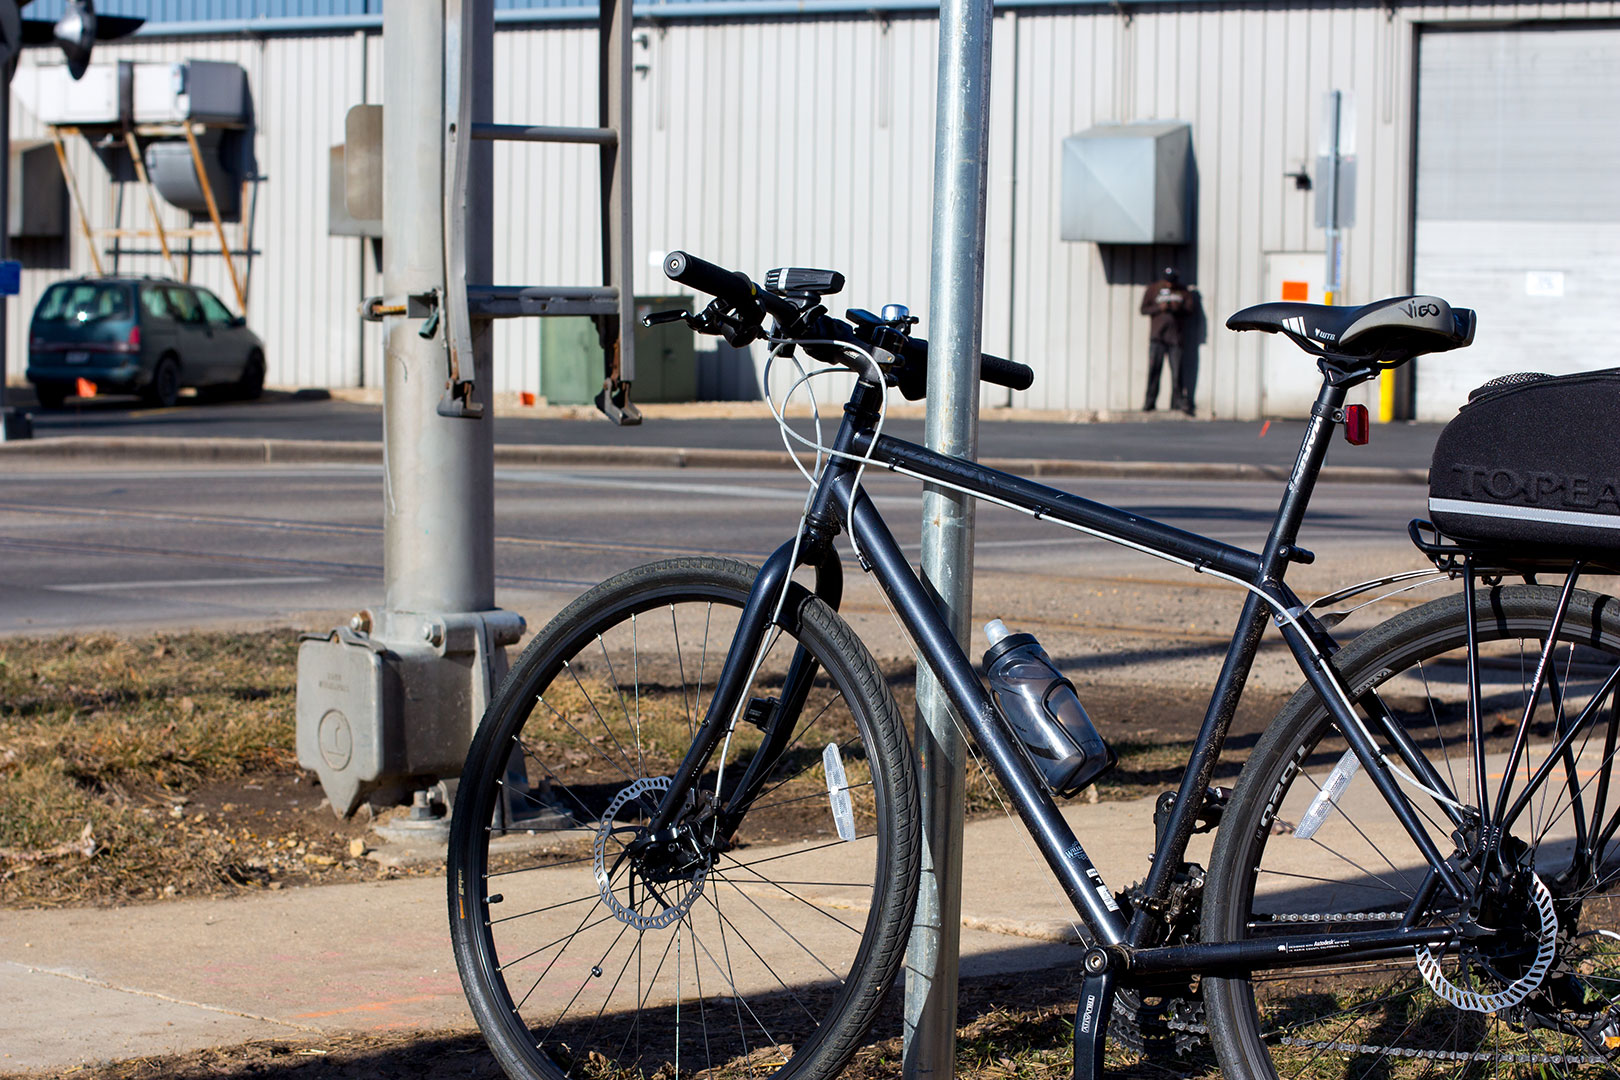 A bike, railroad tracks, a factory and a factory worker